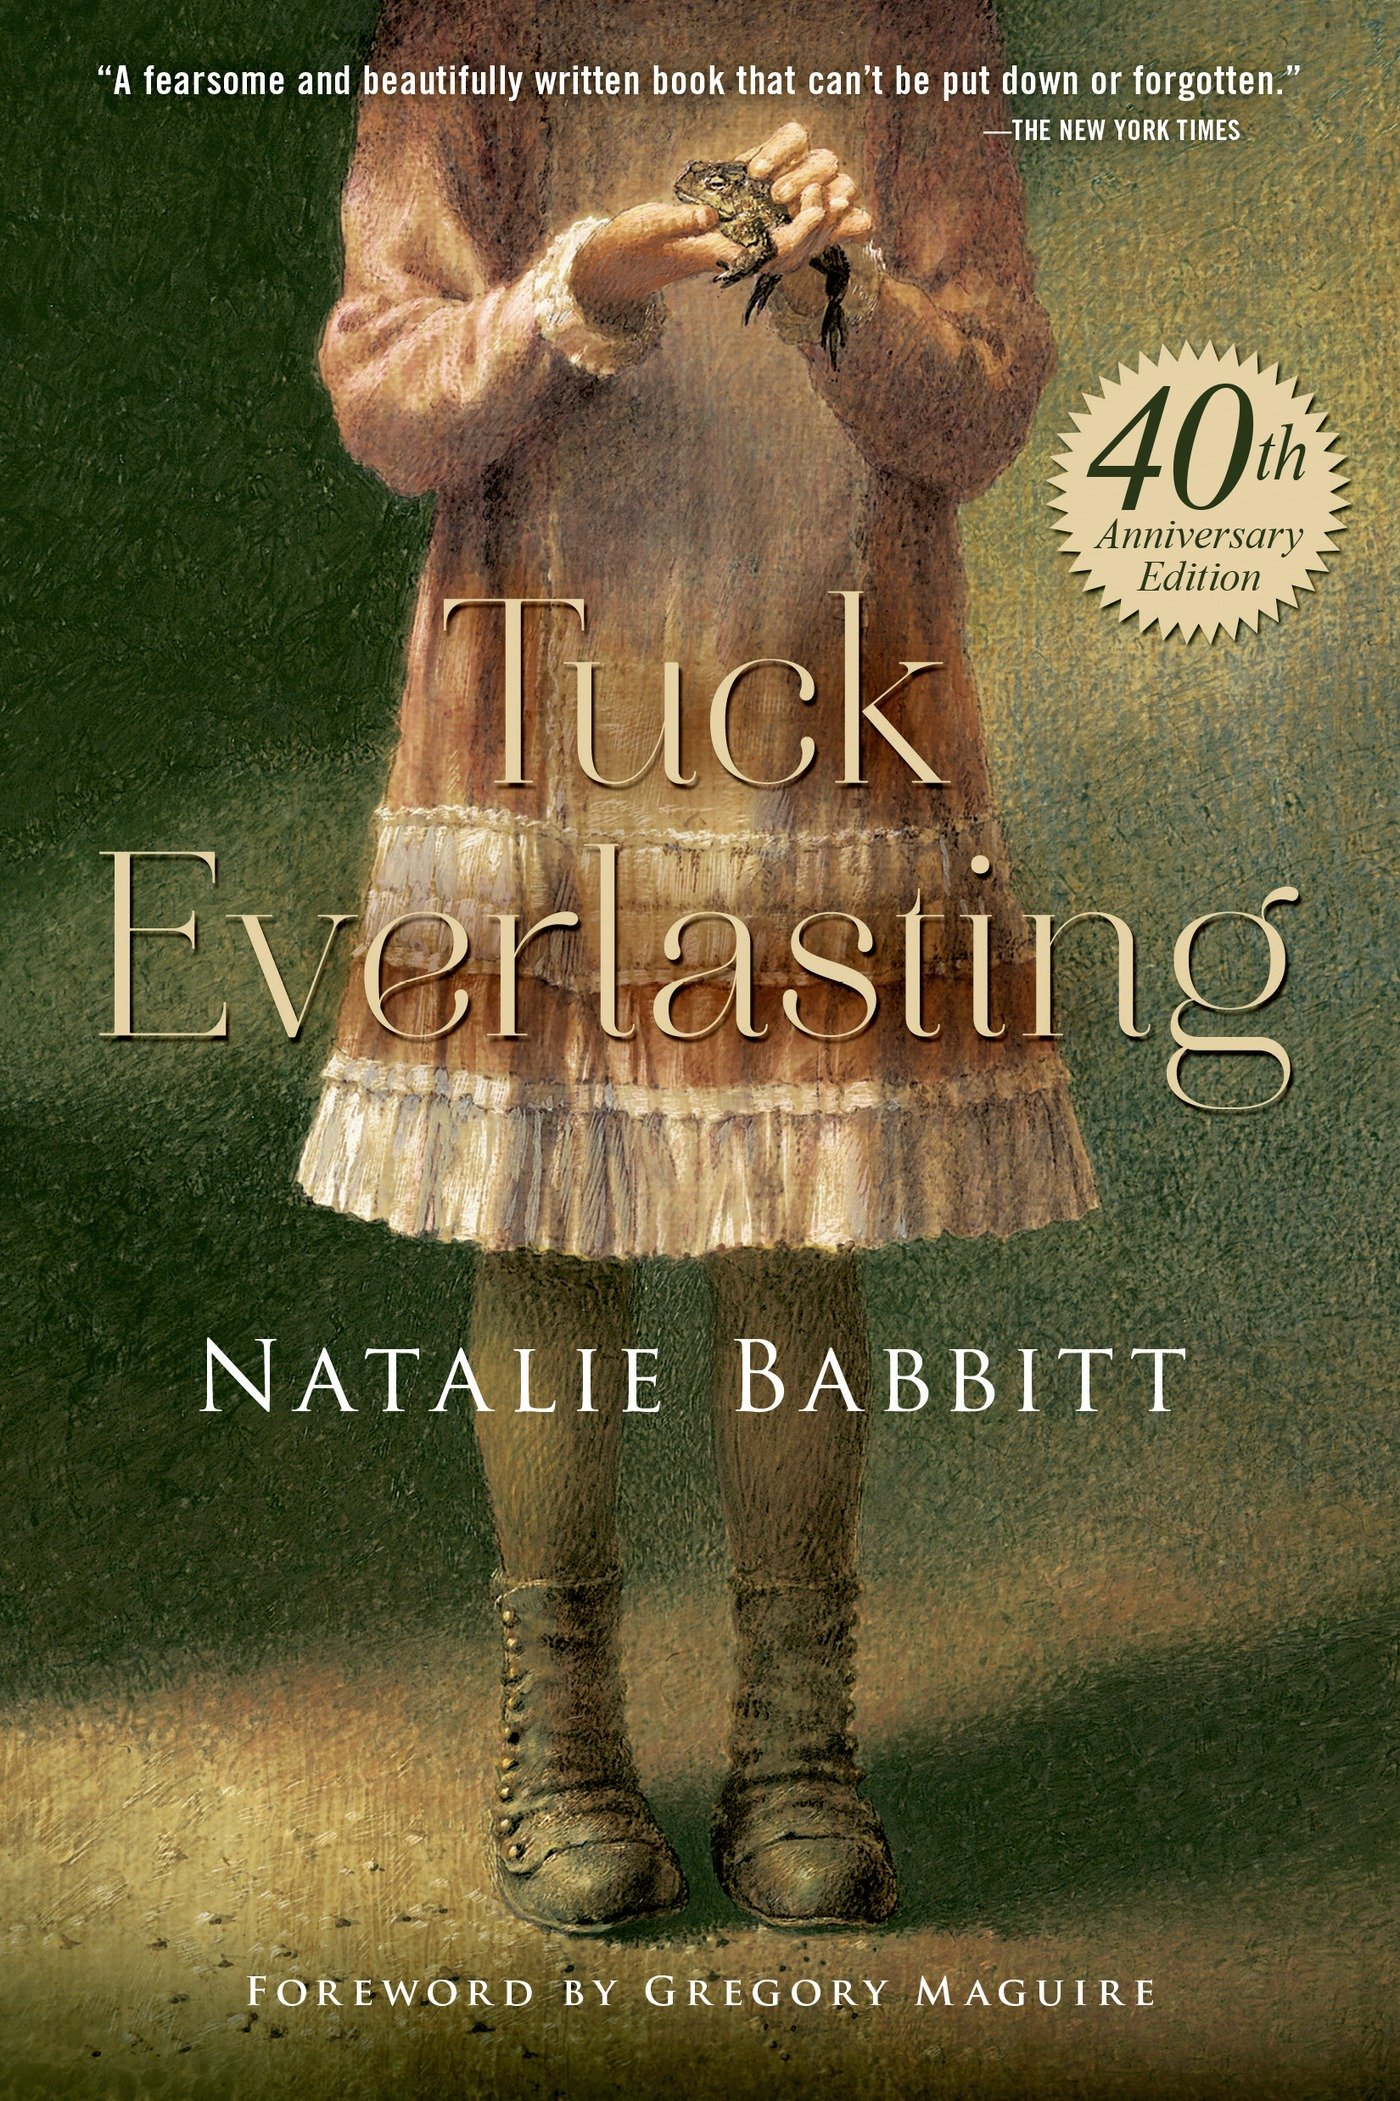 Image result for tuck everlasting book cover